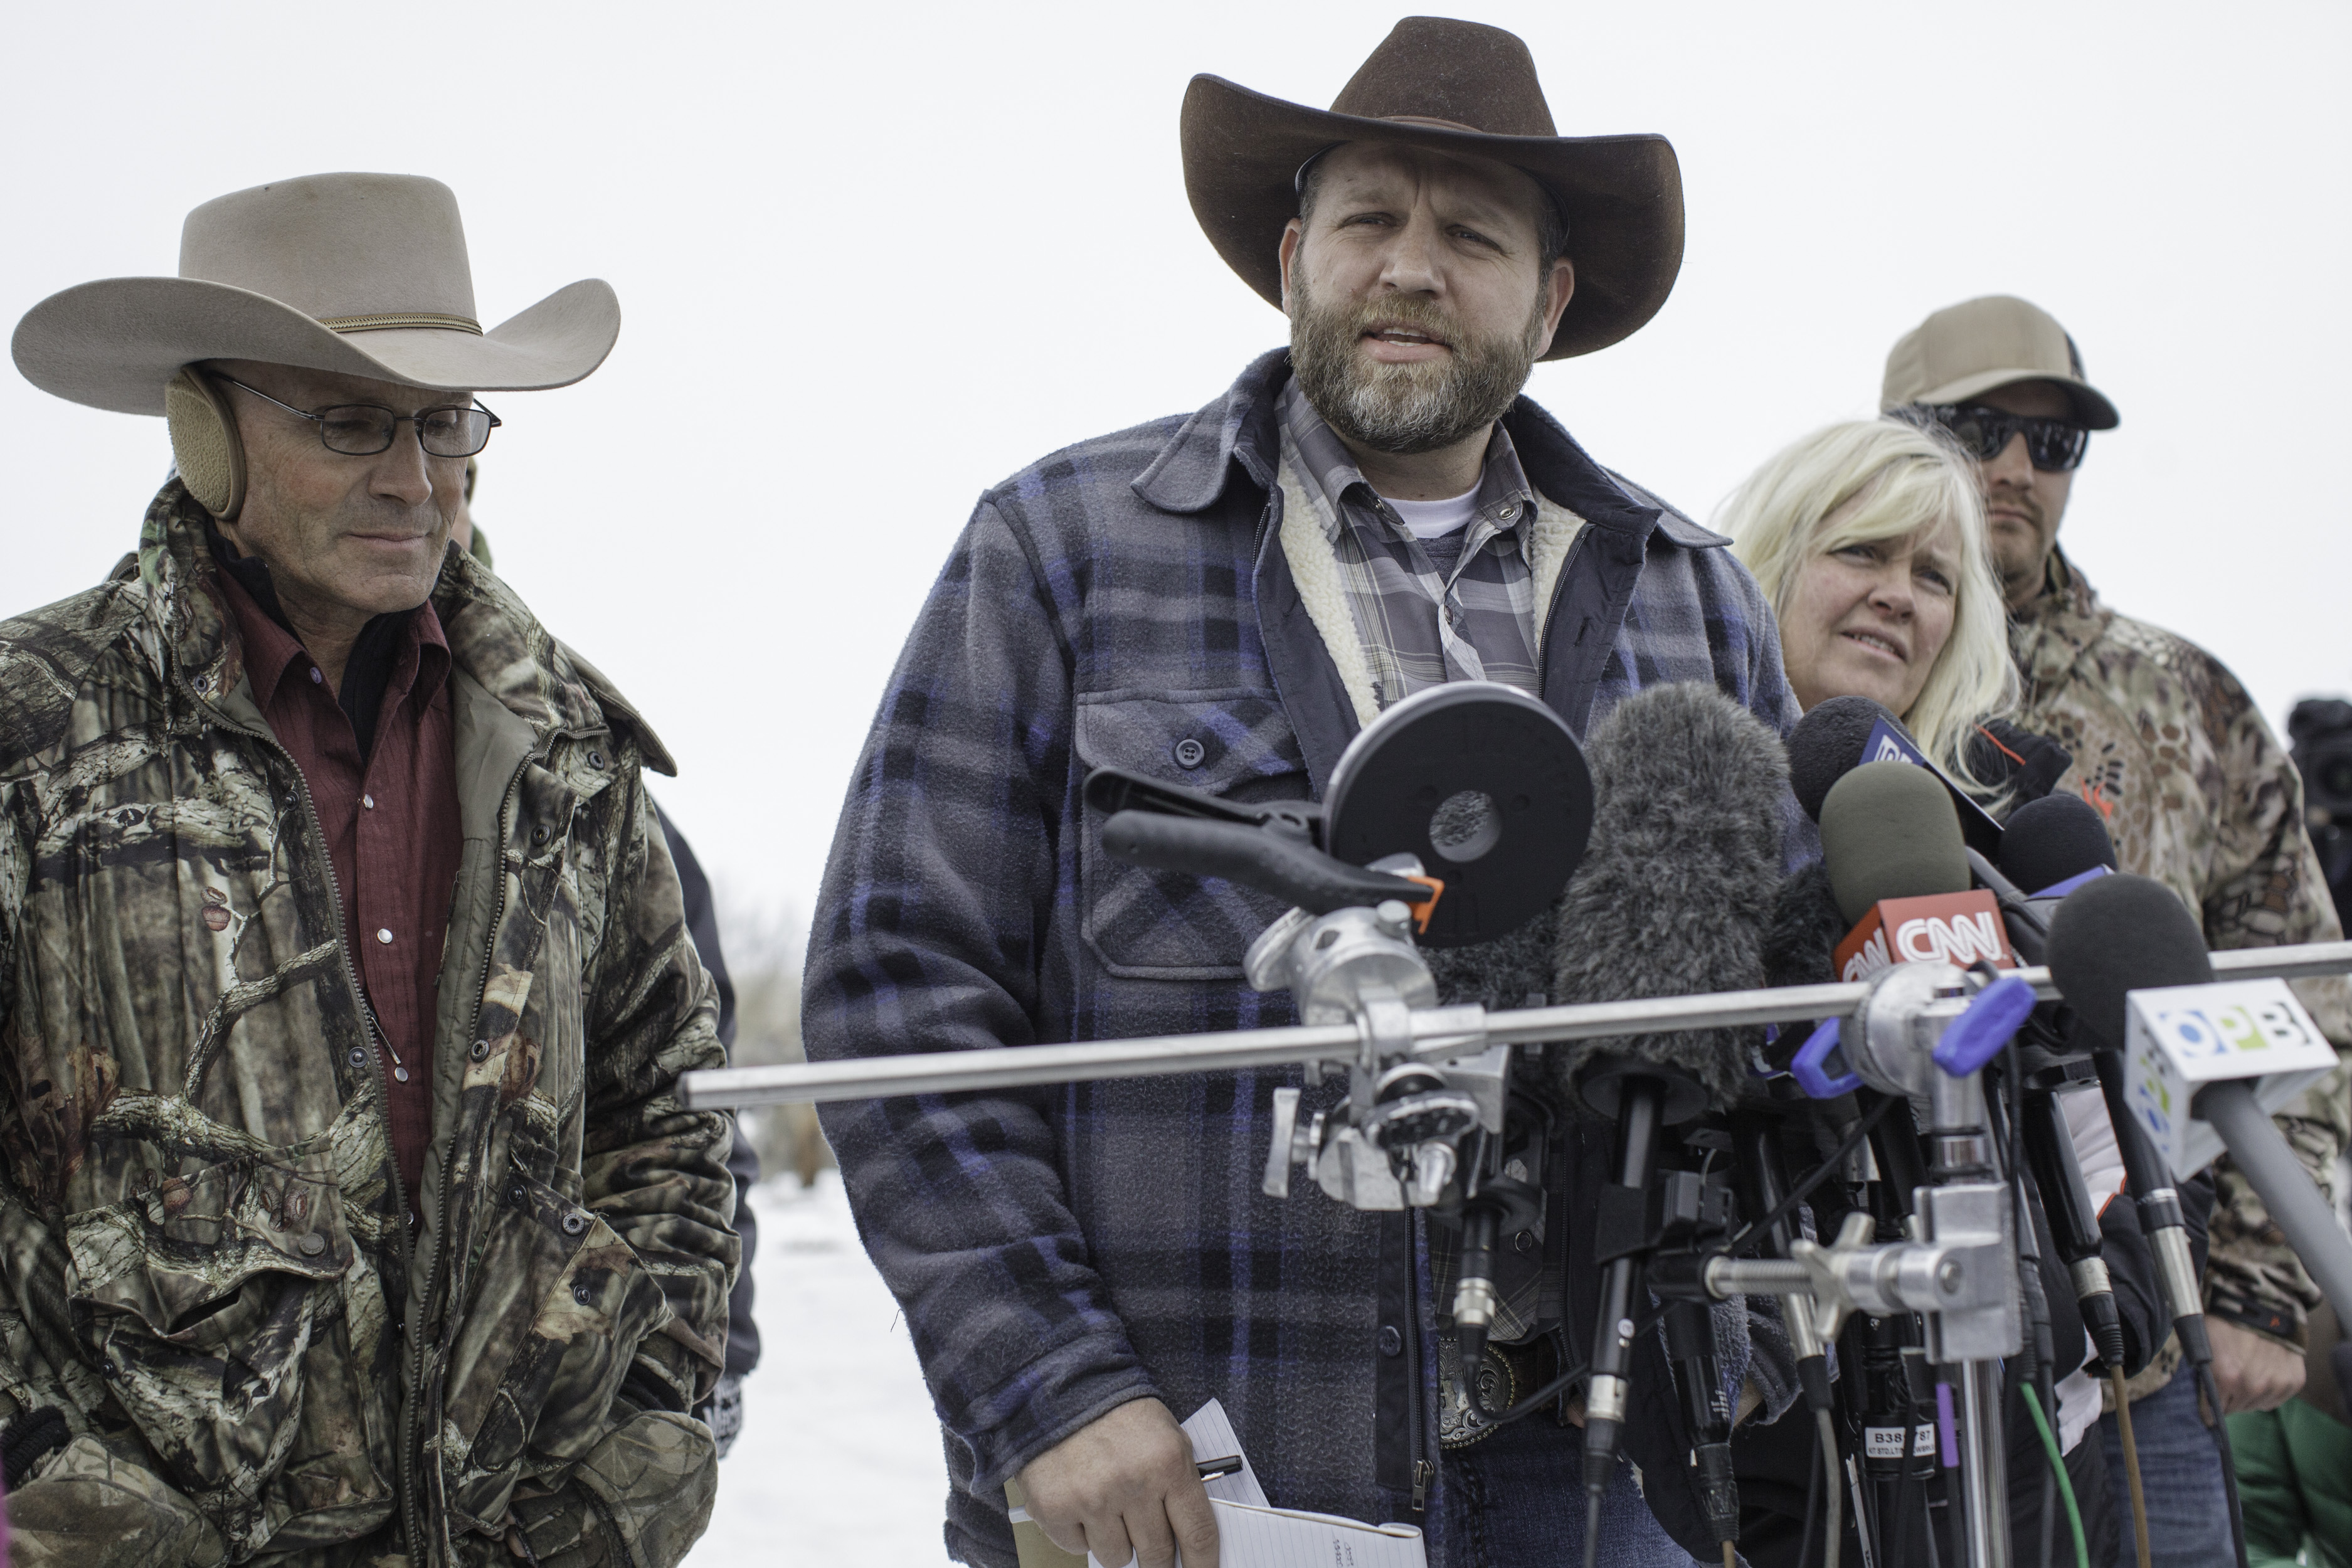 Ammon Bundy (C), leader of an armed anti-government militia, makes a statement at a news conference at the Malheur National Wildlife Refuge Headquarters near Burns, Ore., on Jan. 5, 2016.